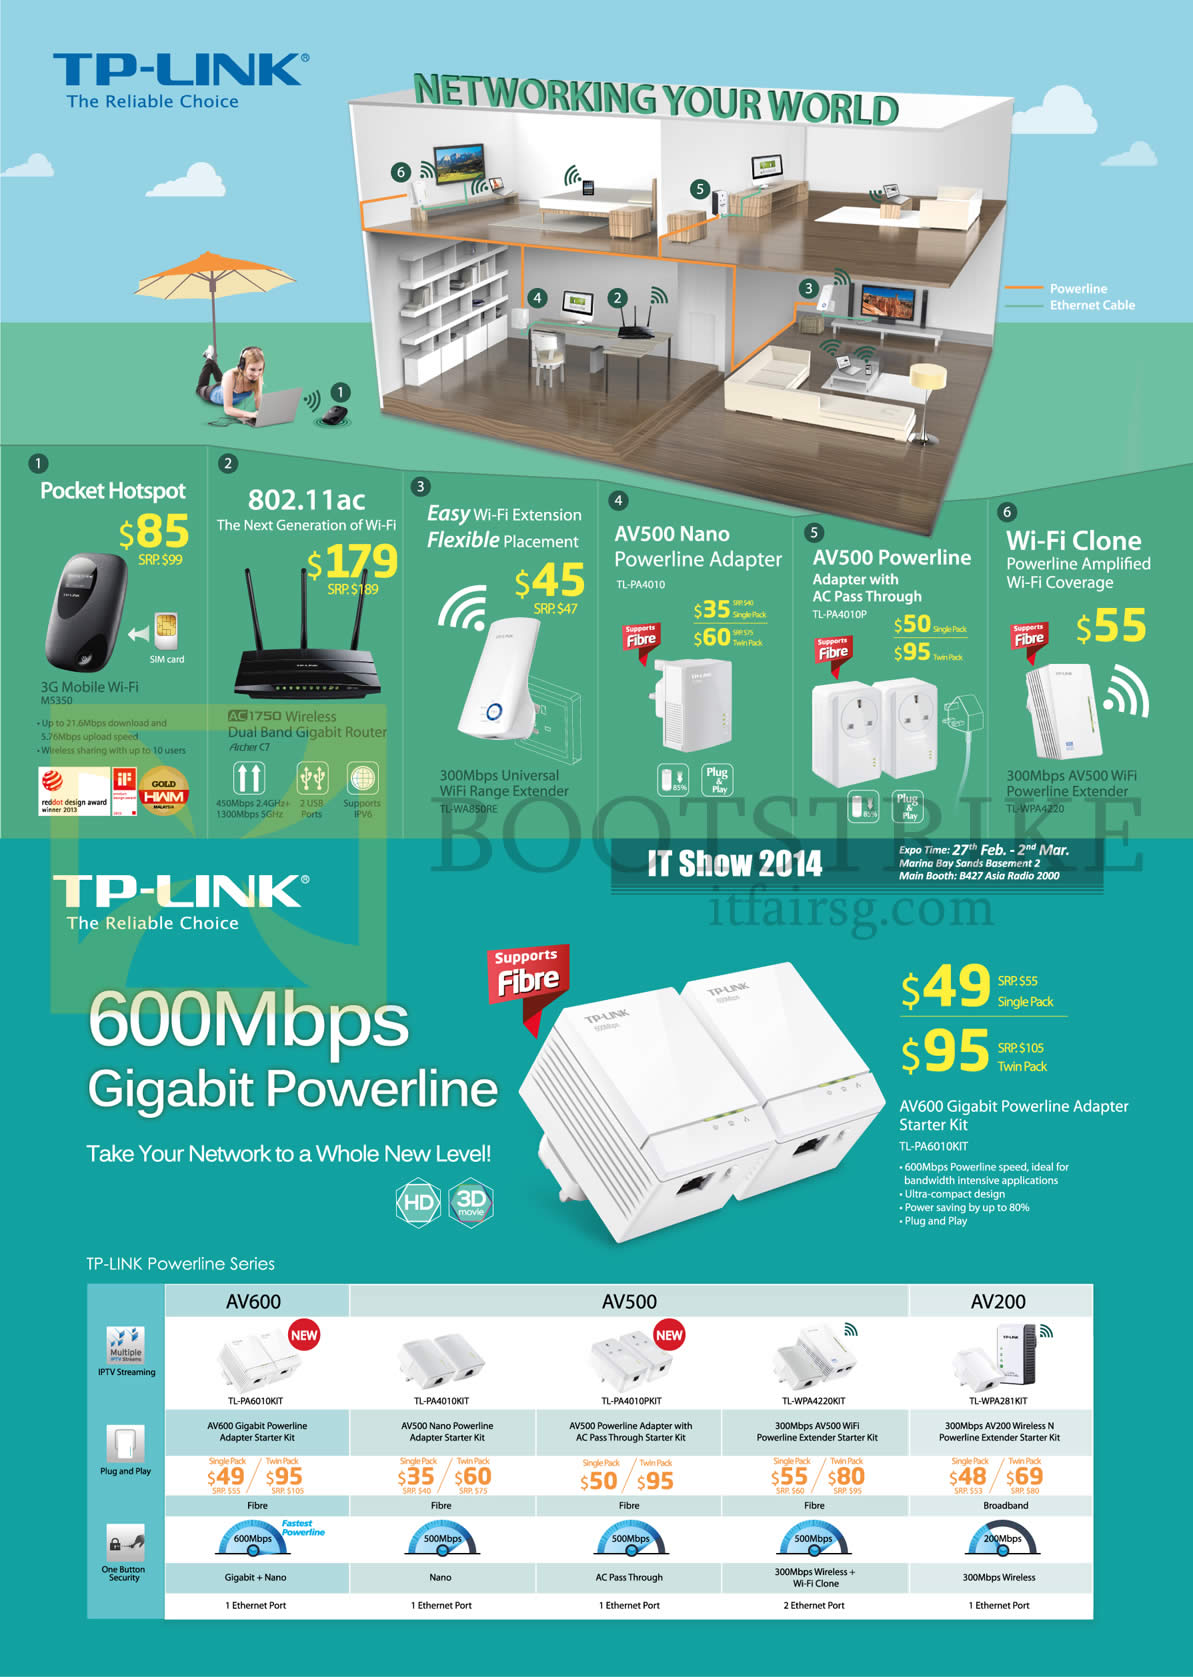 IT SHOW 2014 price list image brochure of Asia Radio TP-Link Networking Pocket Hotspot, AC Router, Range Extender, Powerline Gigabit AV600 AV500 AV200